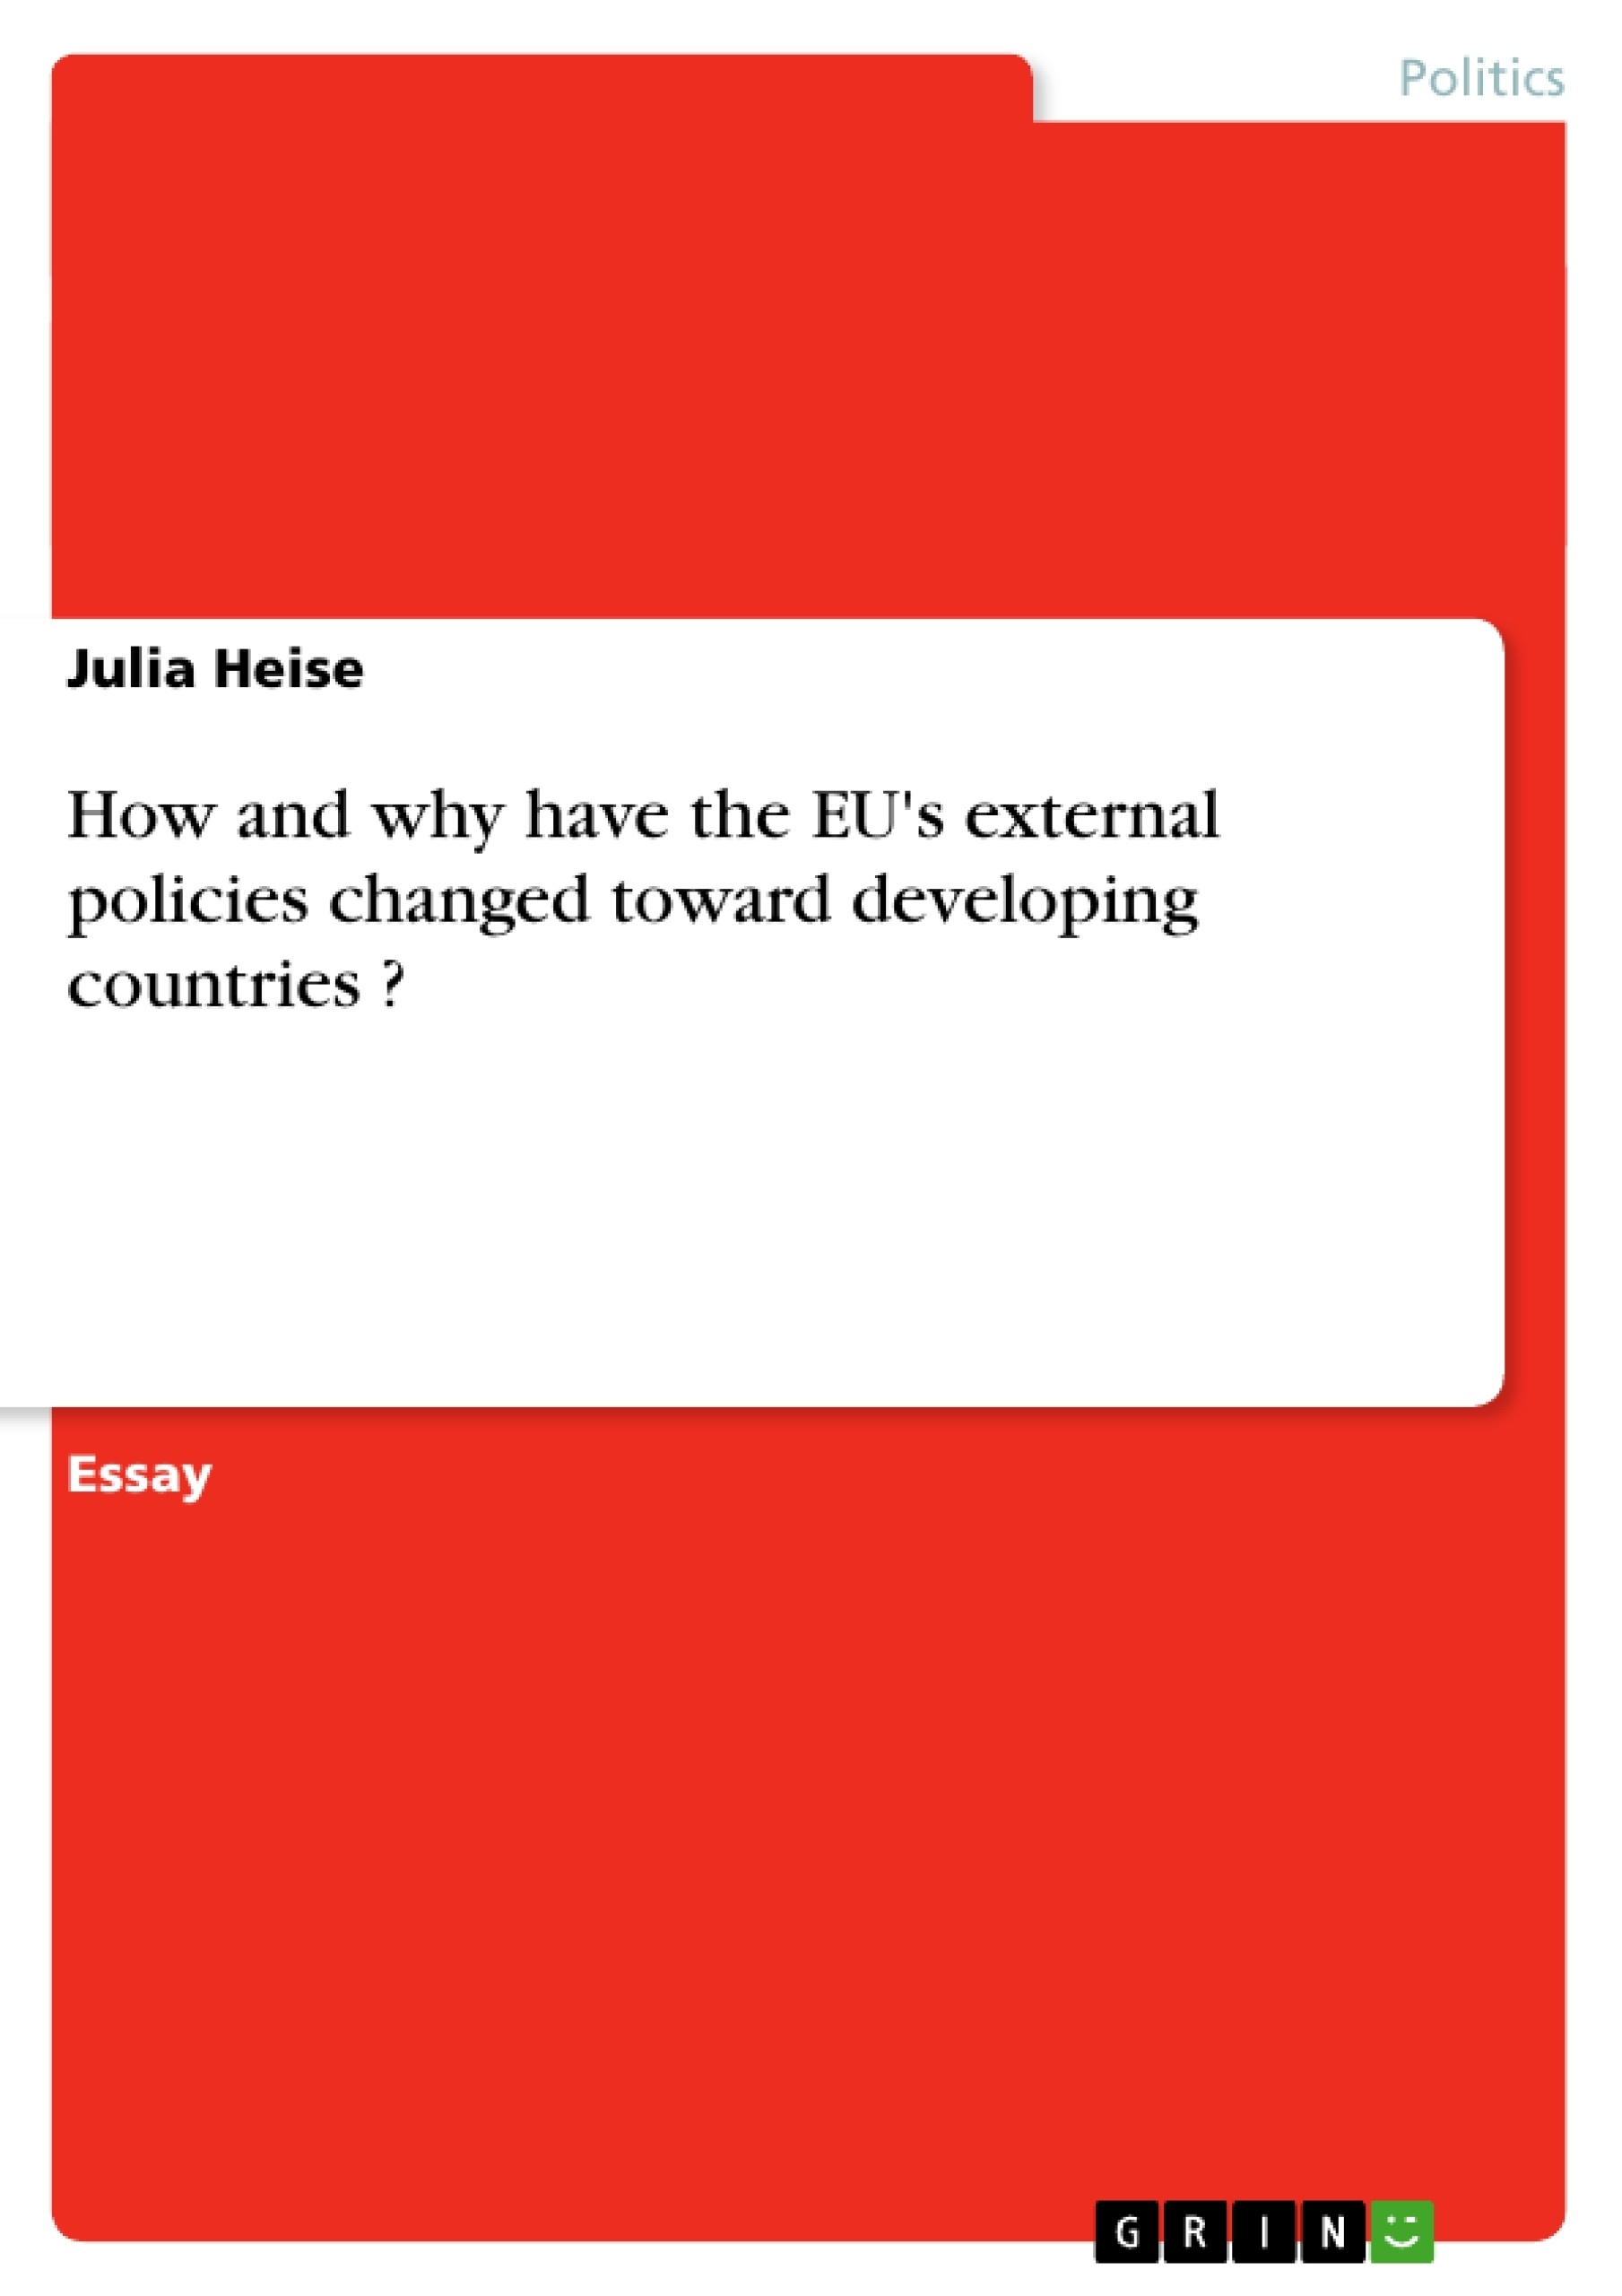 Title: How and why have the EU's external policies changed toward developing countries ?